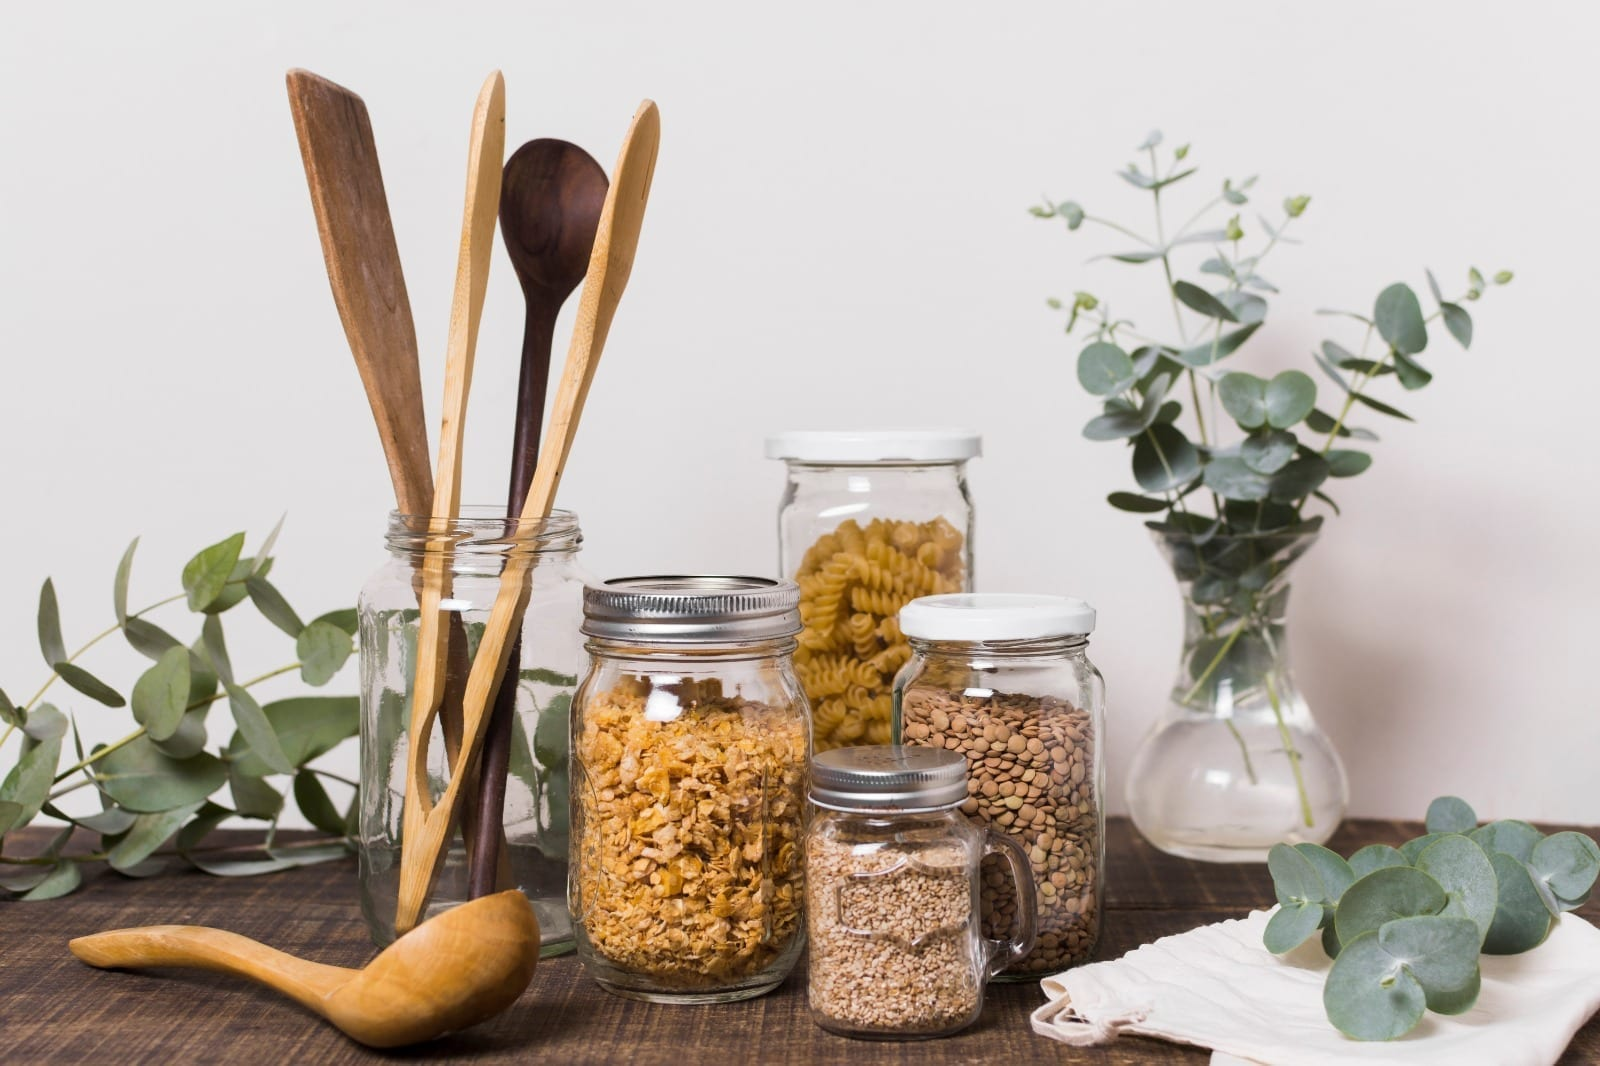 REVOLVE - use your own container - buy in bulk - zero waste